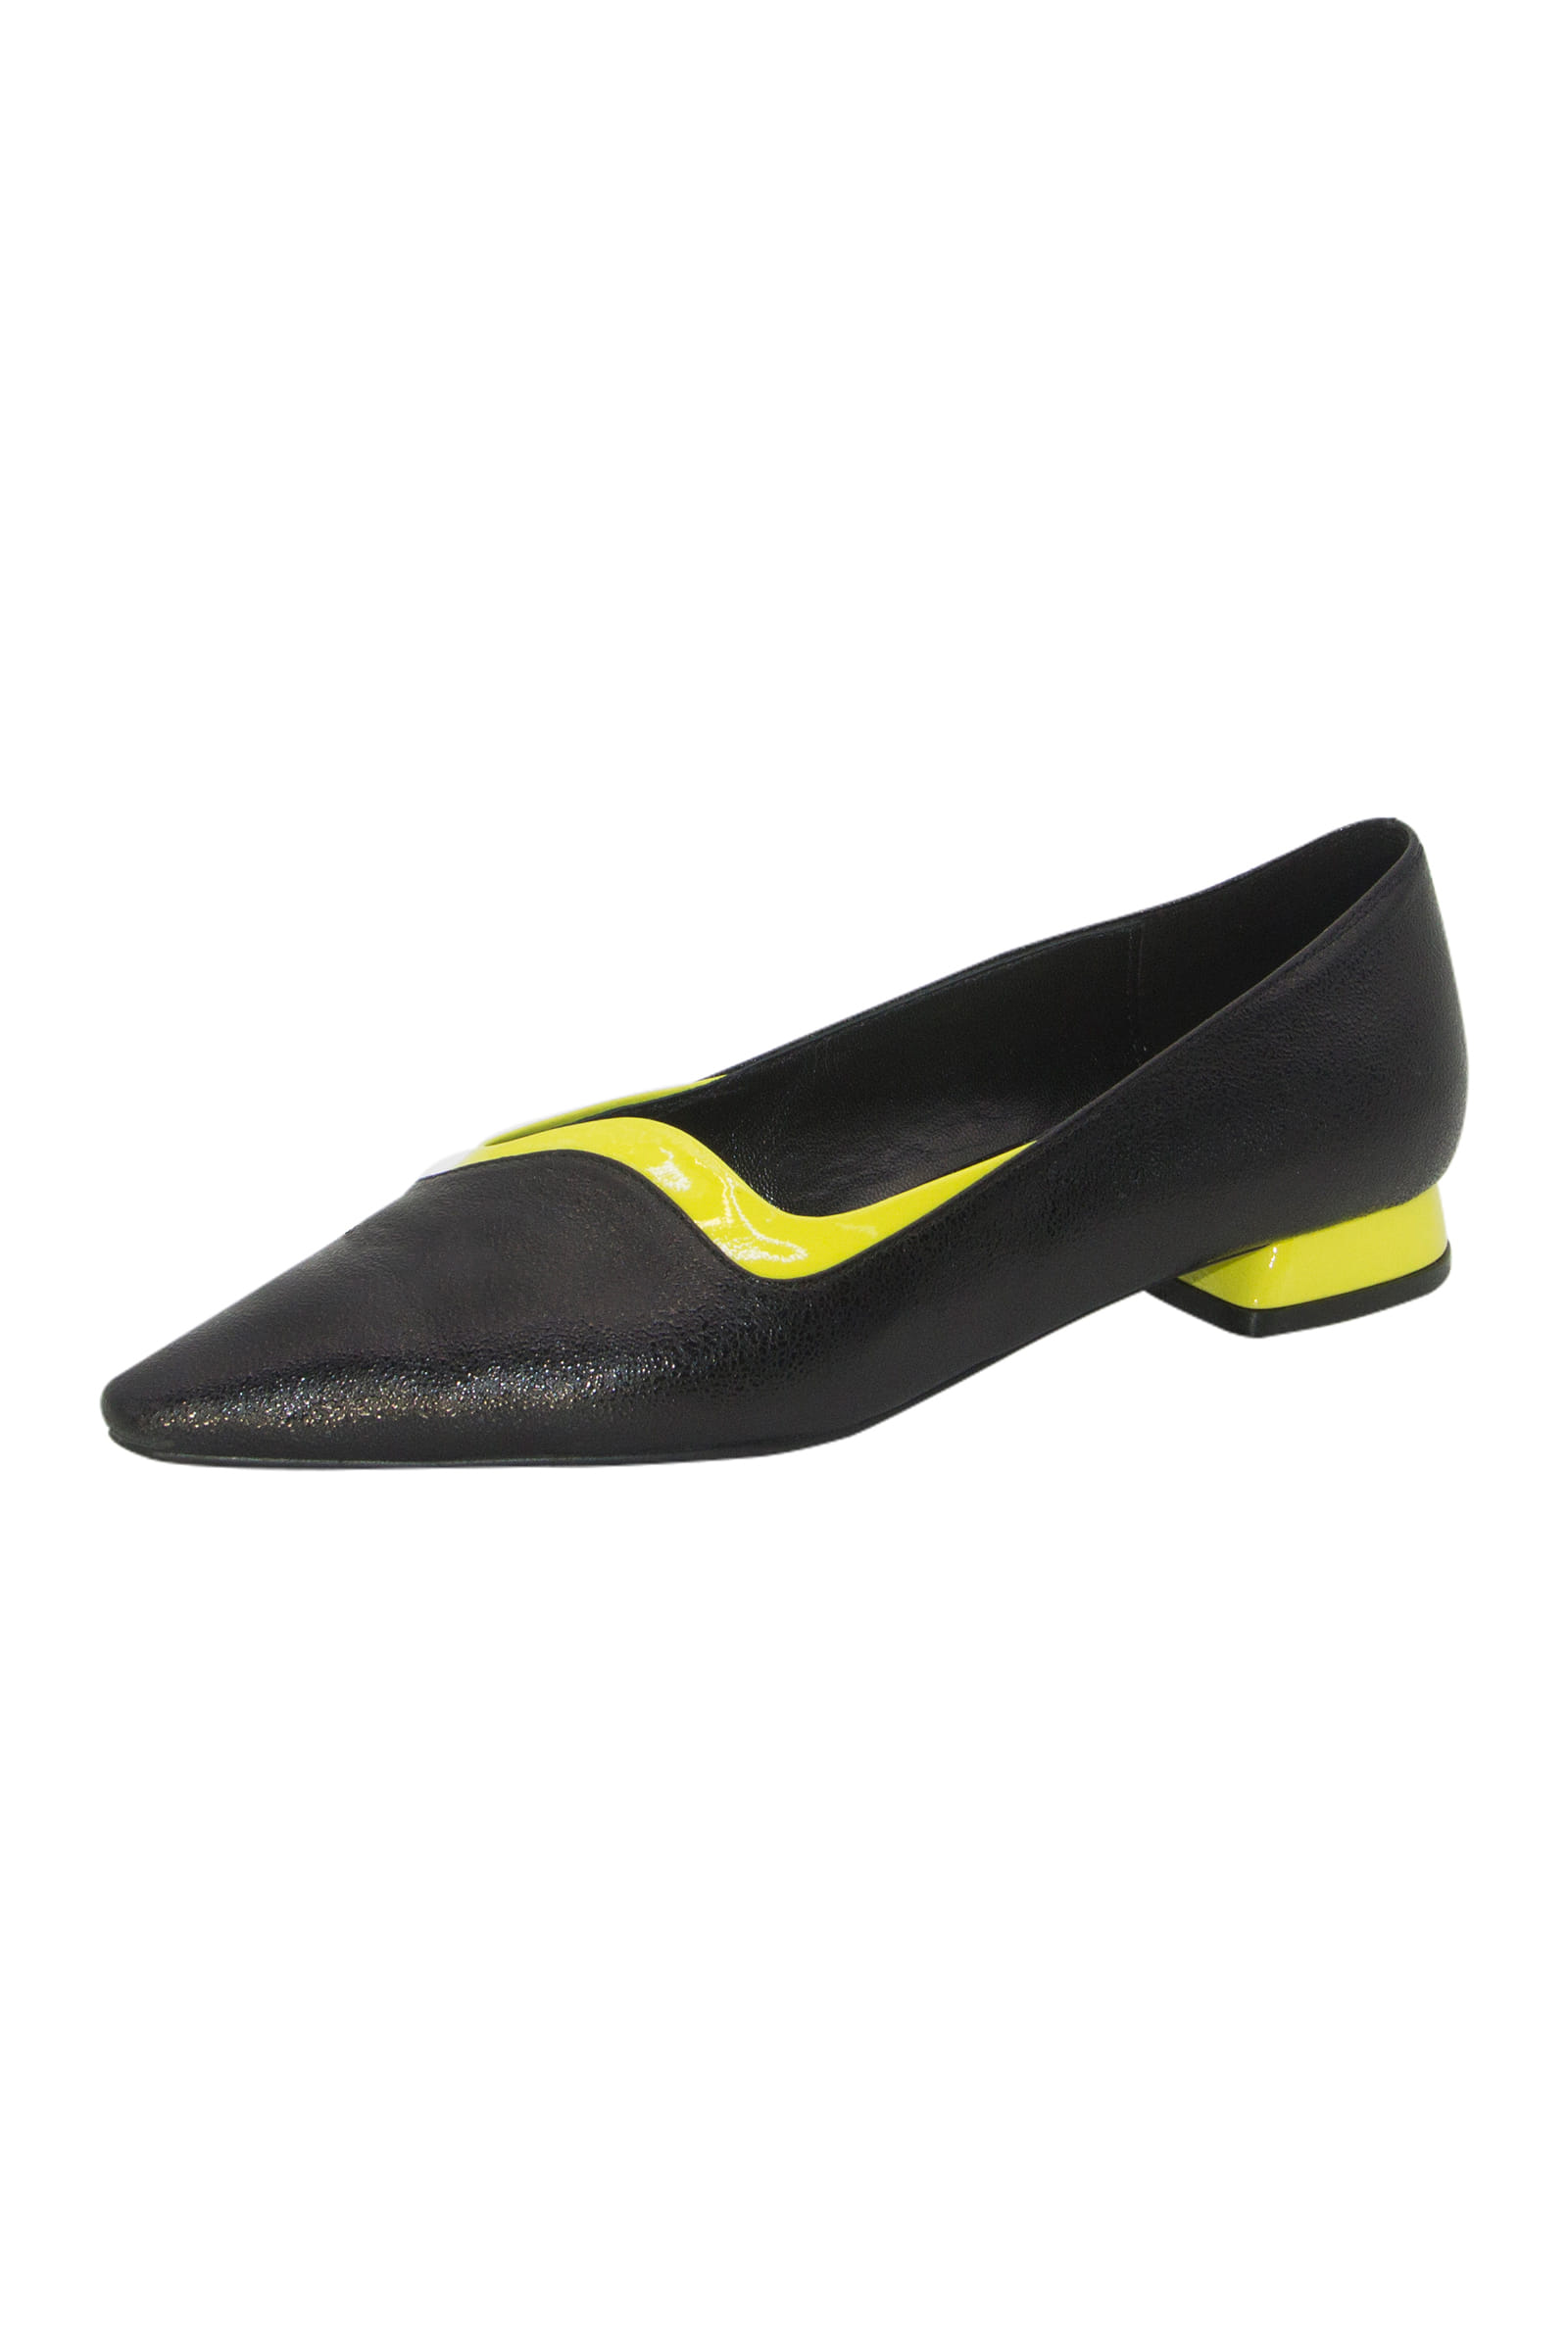 Wavy Layered Flats  Black&Lime